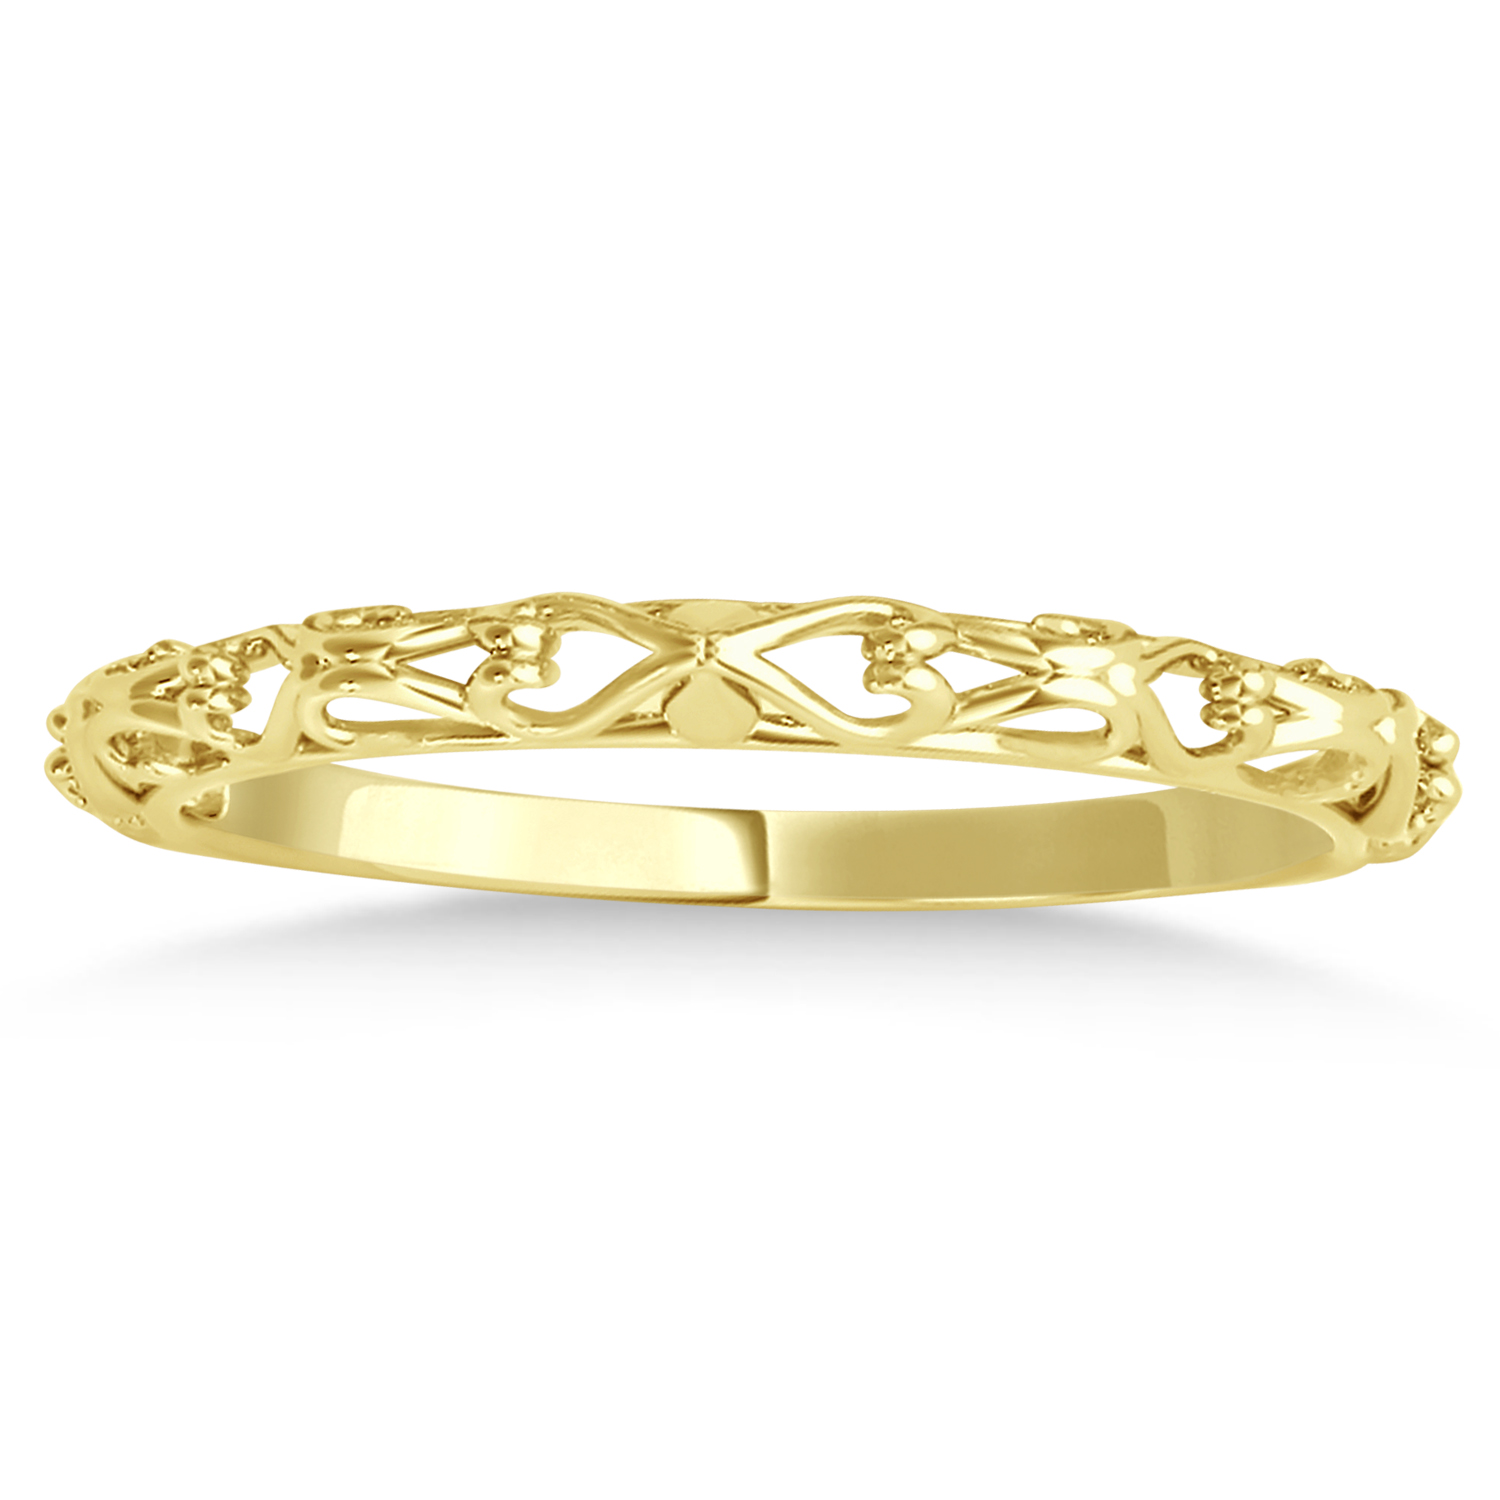 Antique Style Open Scrollwork Wedding Band 14k Yellow Gold